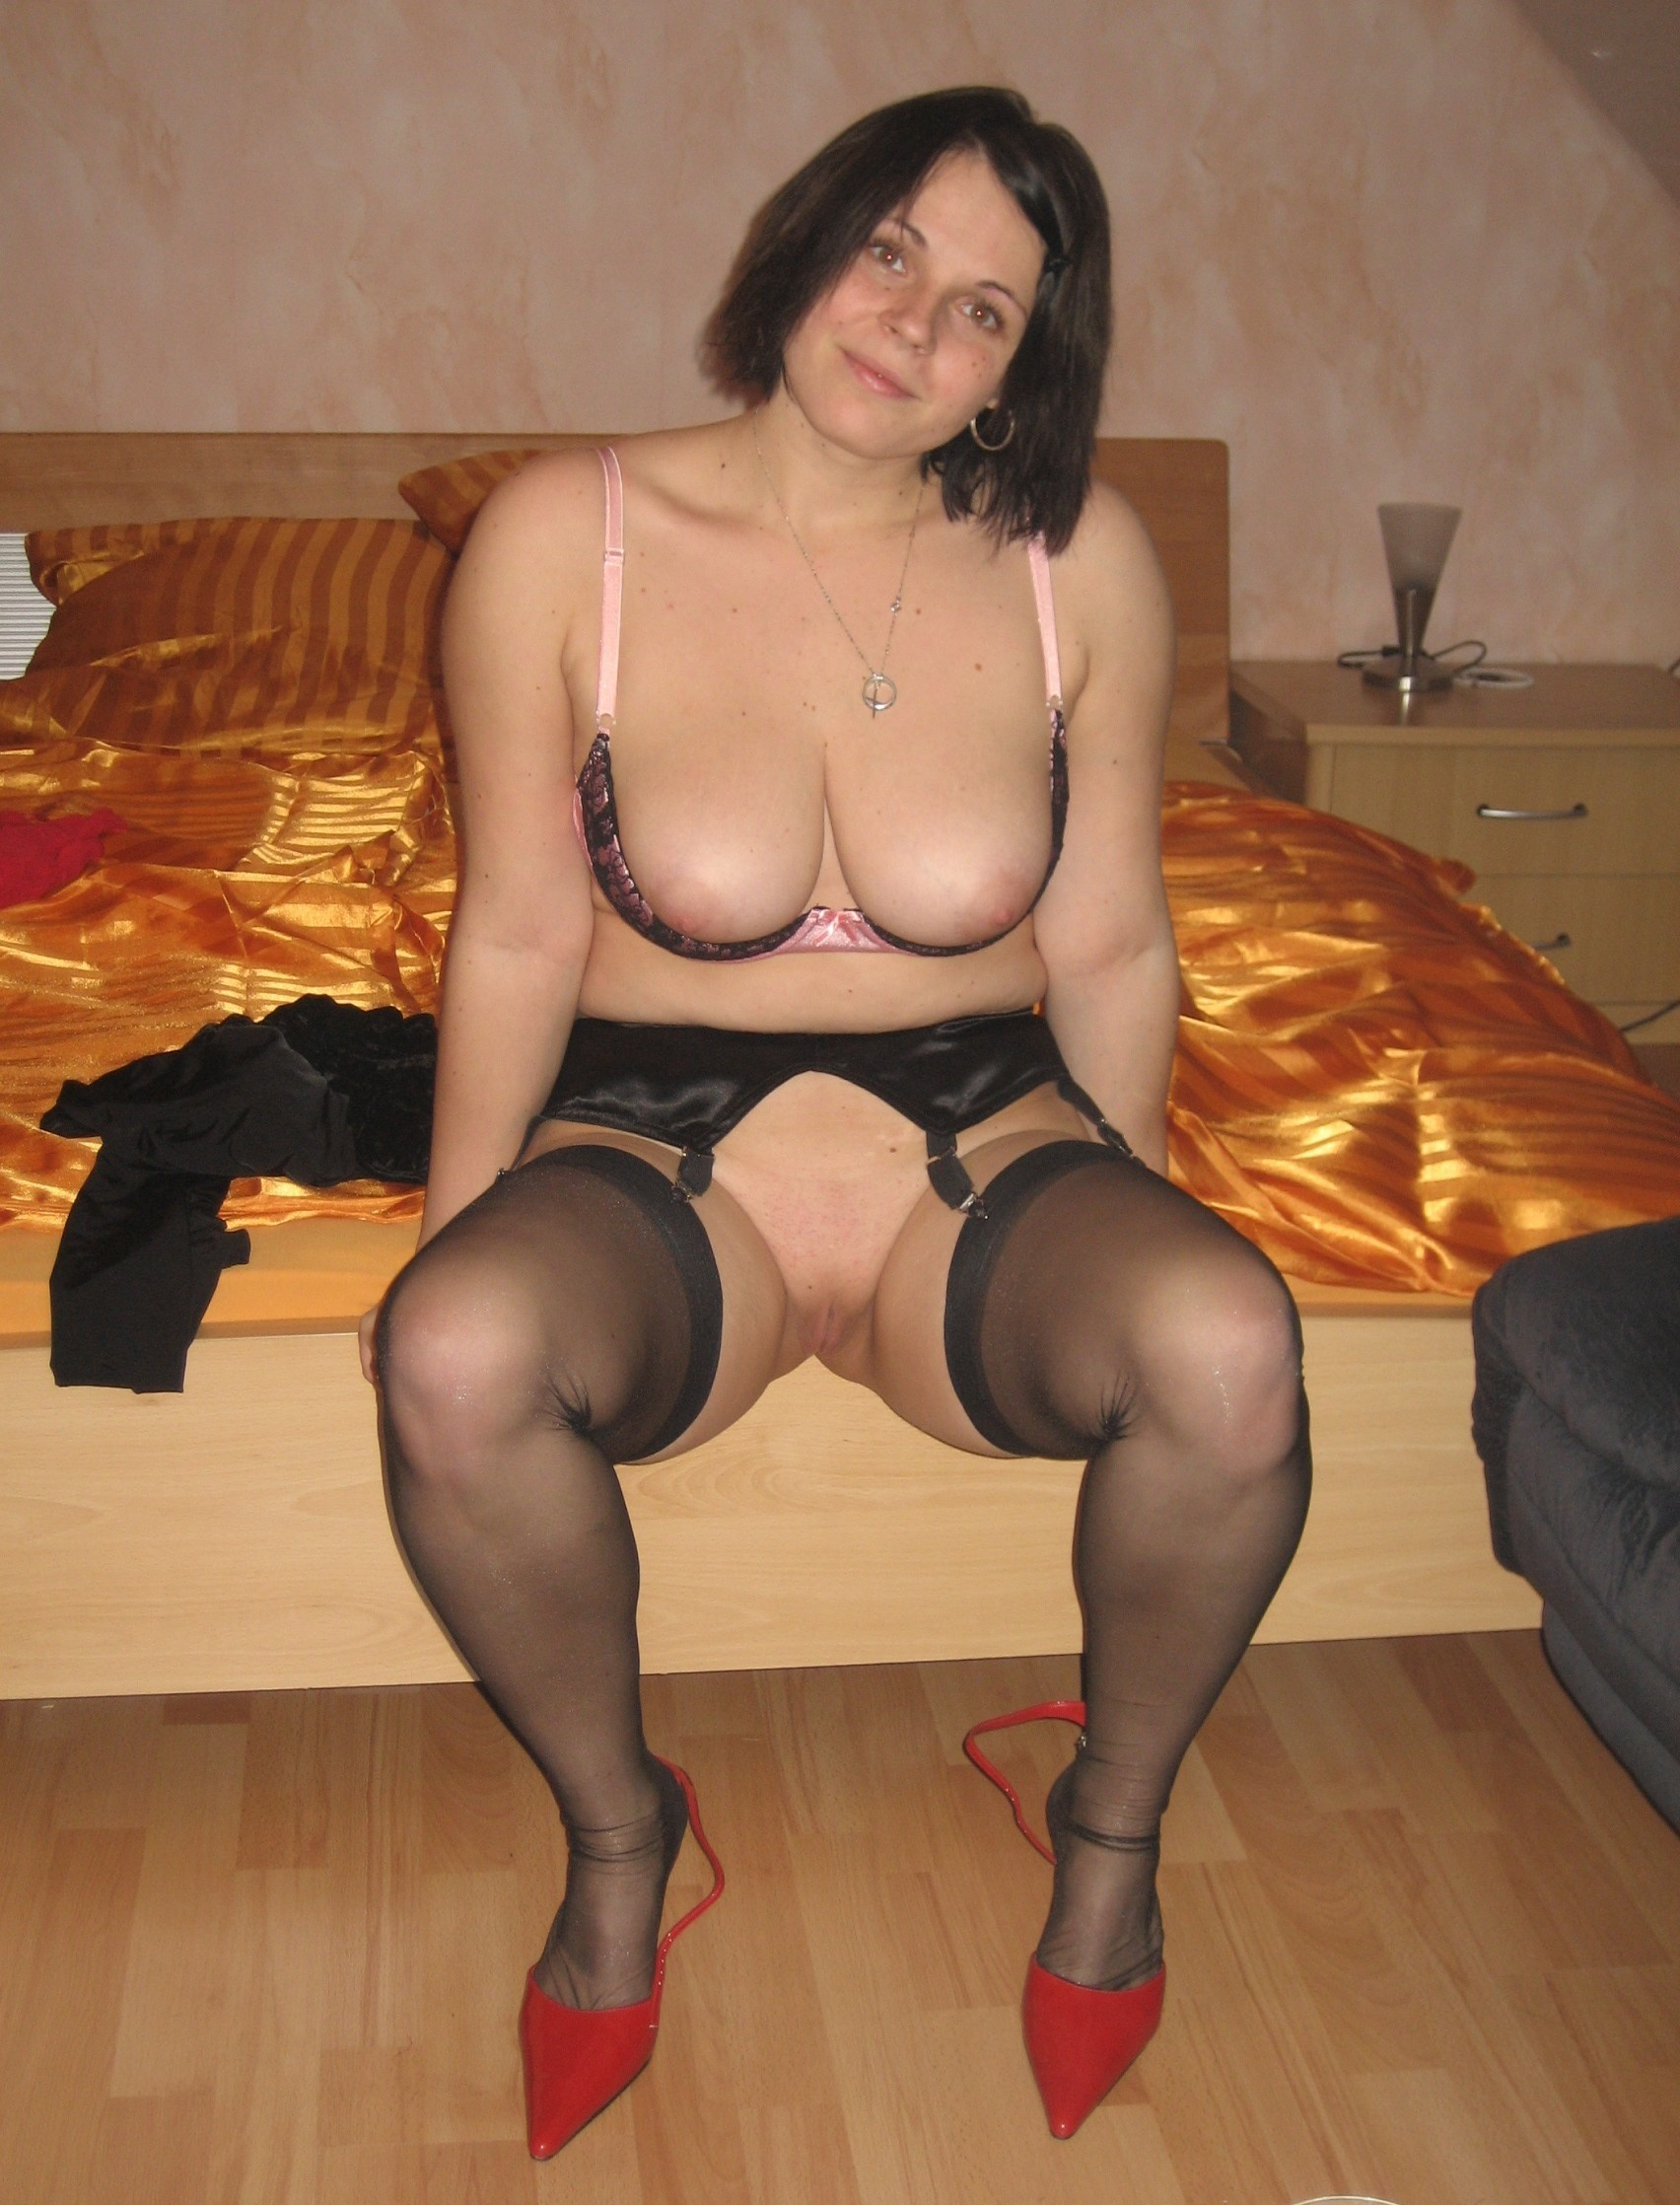 Chubby Milf Images